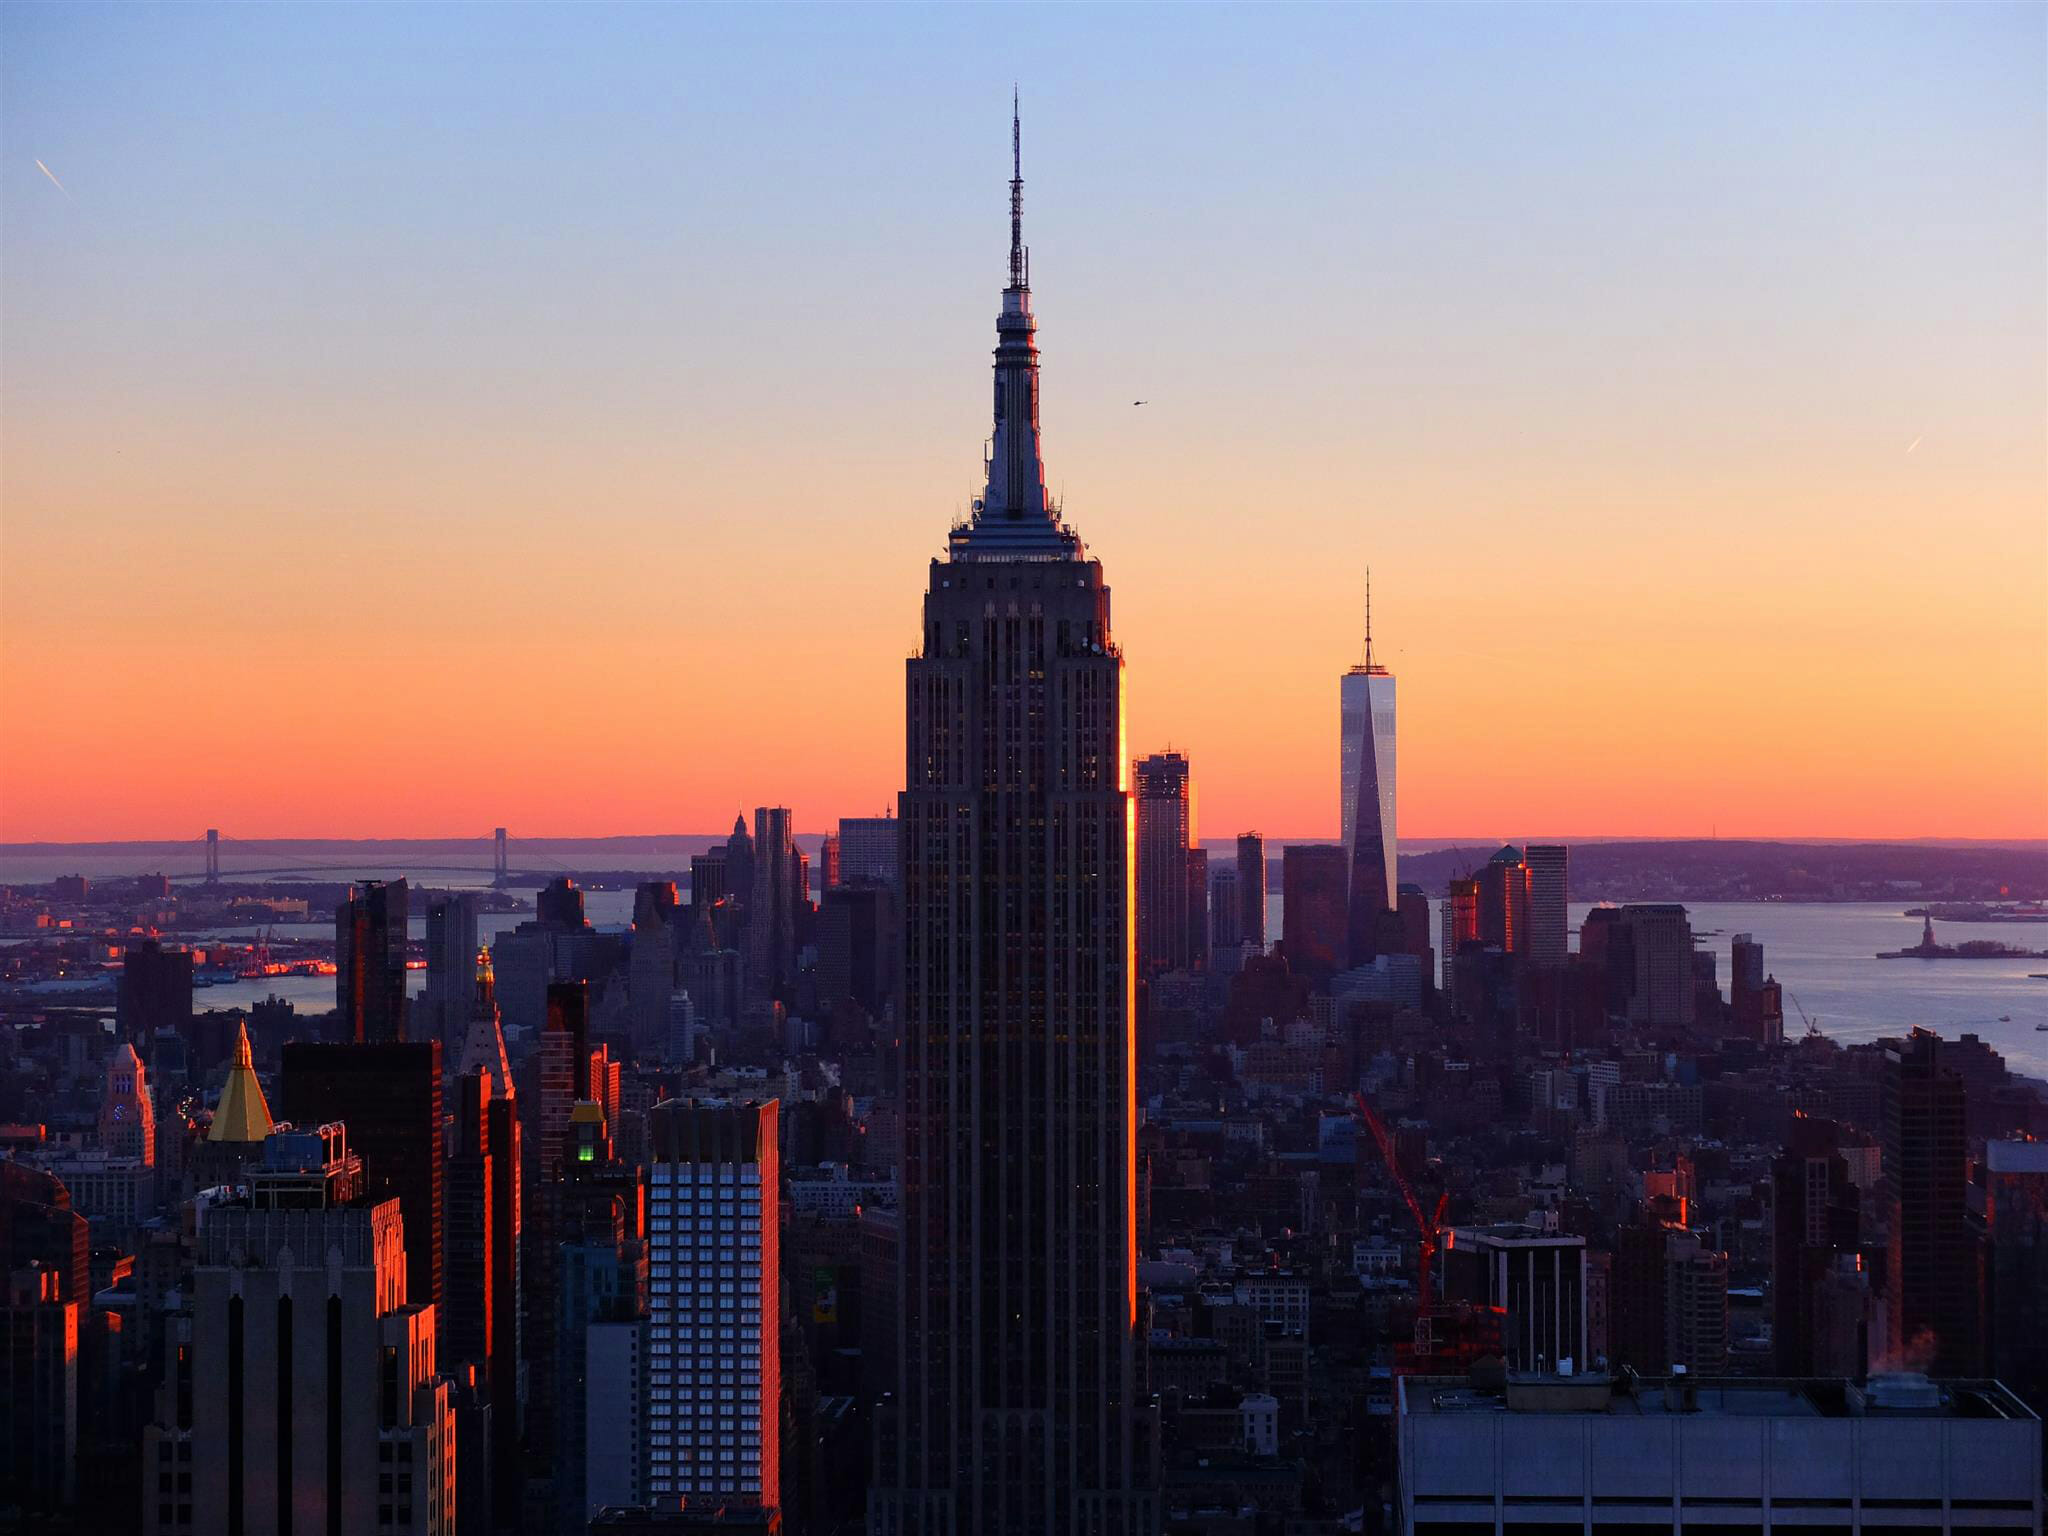 Empire State Building Sunset High Quality Wallpaper